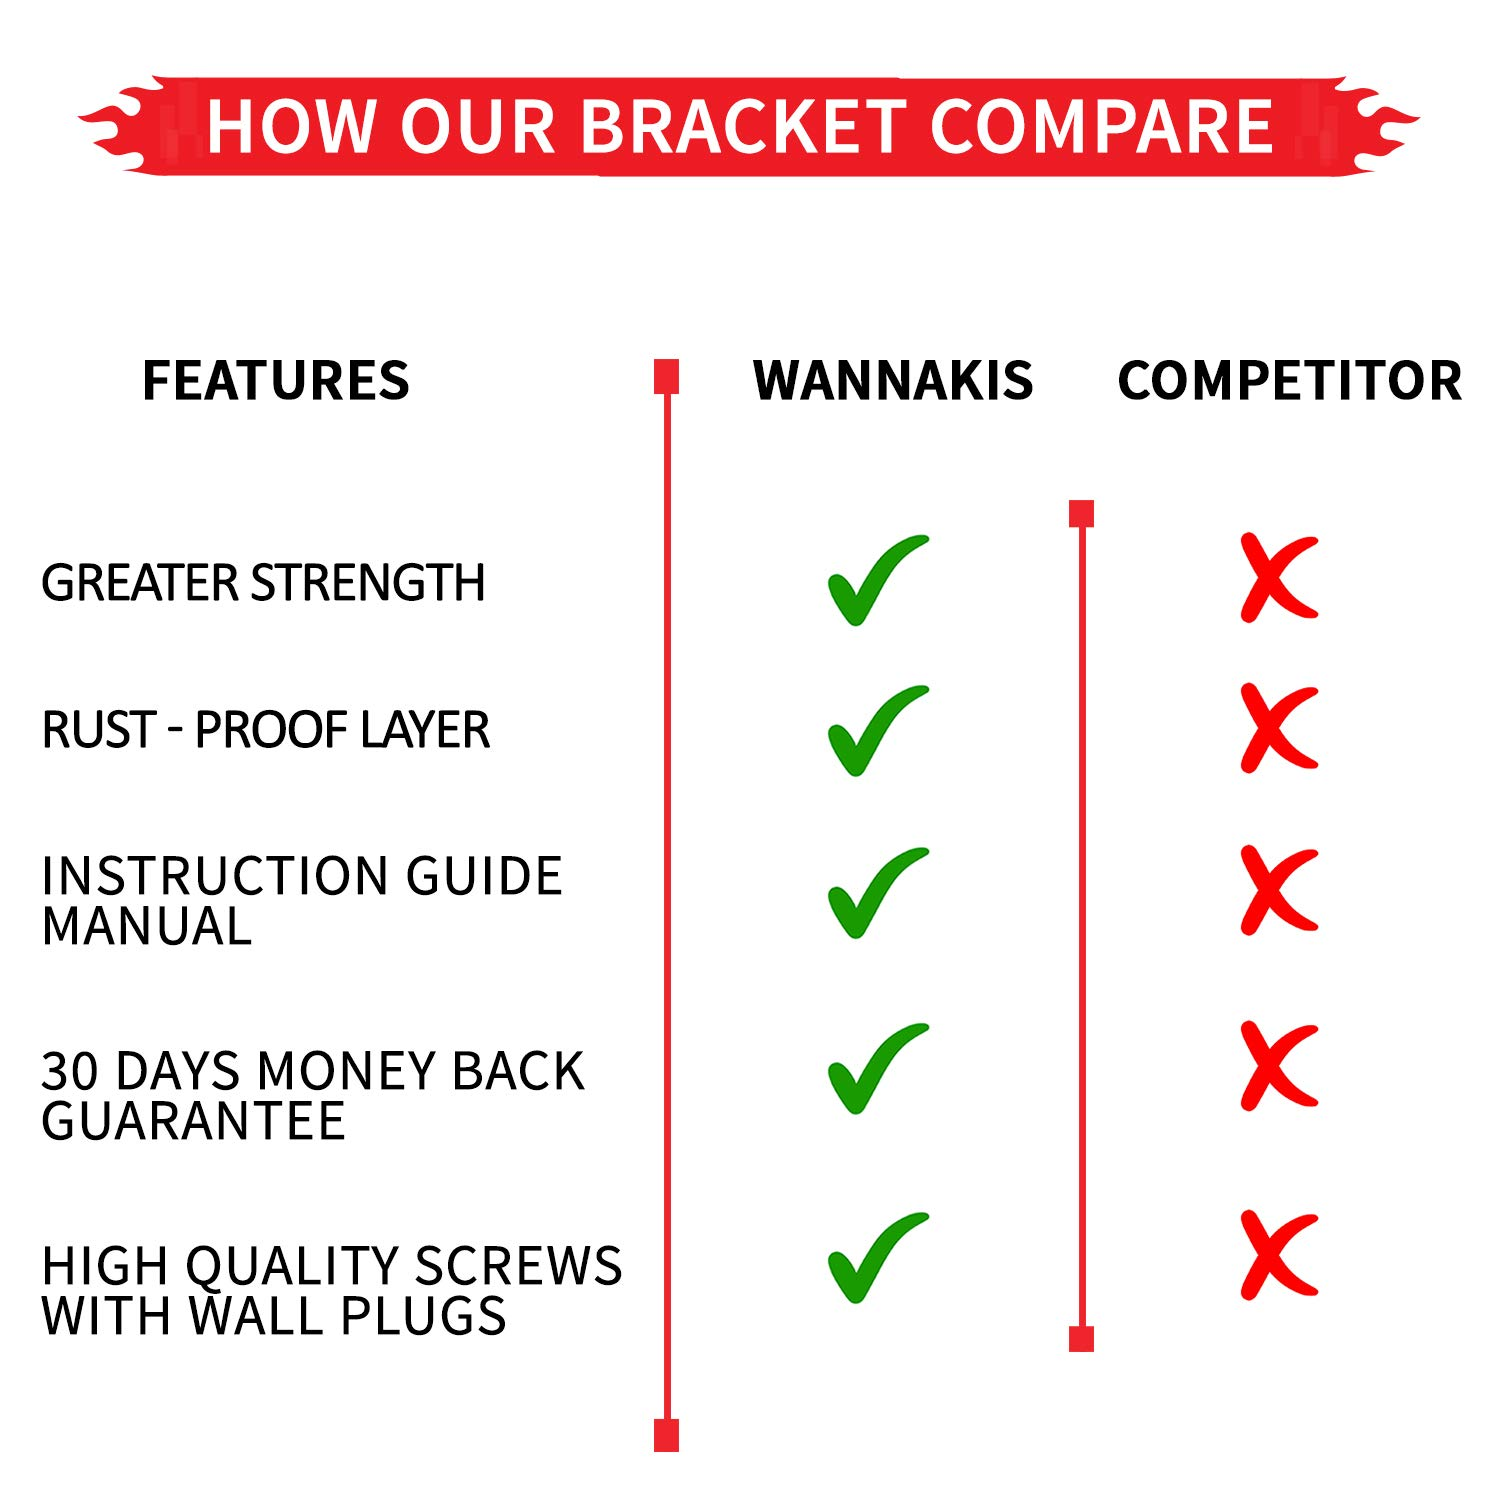 Wanna Kis Sturdy Floating Shelf Bracket Hardware (Pack of 4 Pieces) - Blind Shelf Brackets for Wood Shelves Support - Wall Plugs and Screws Included